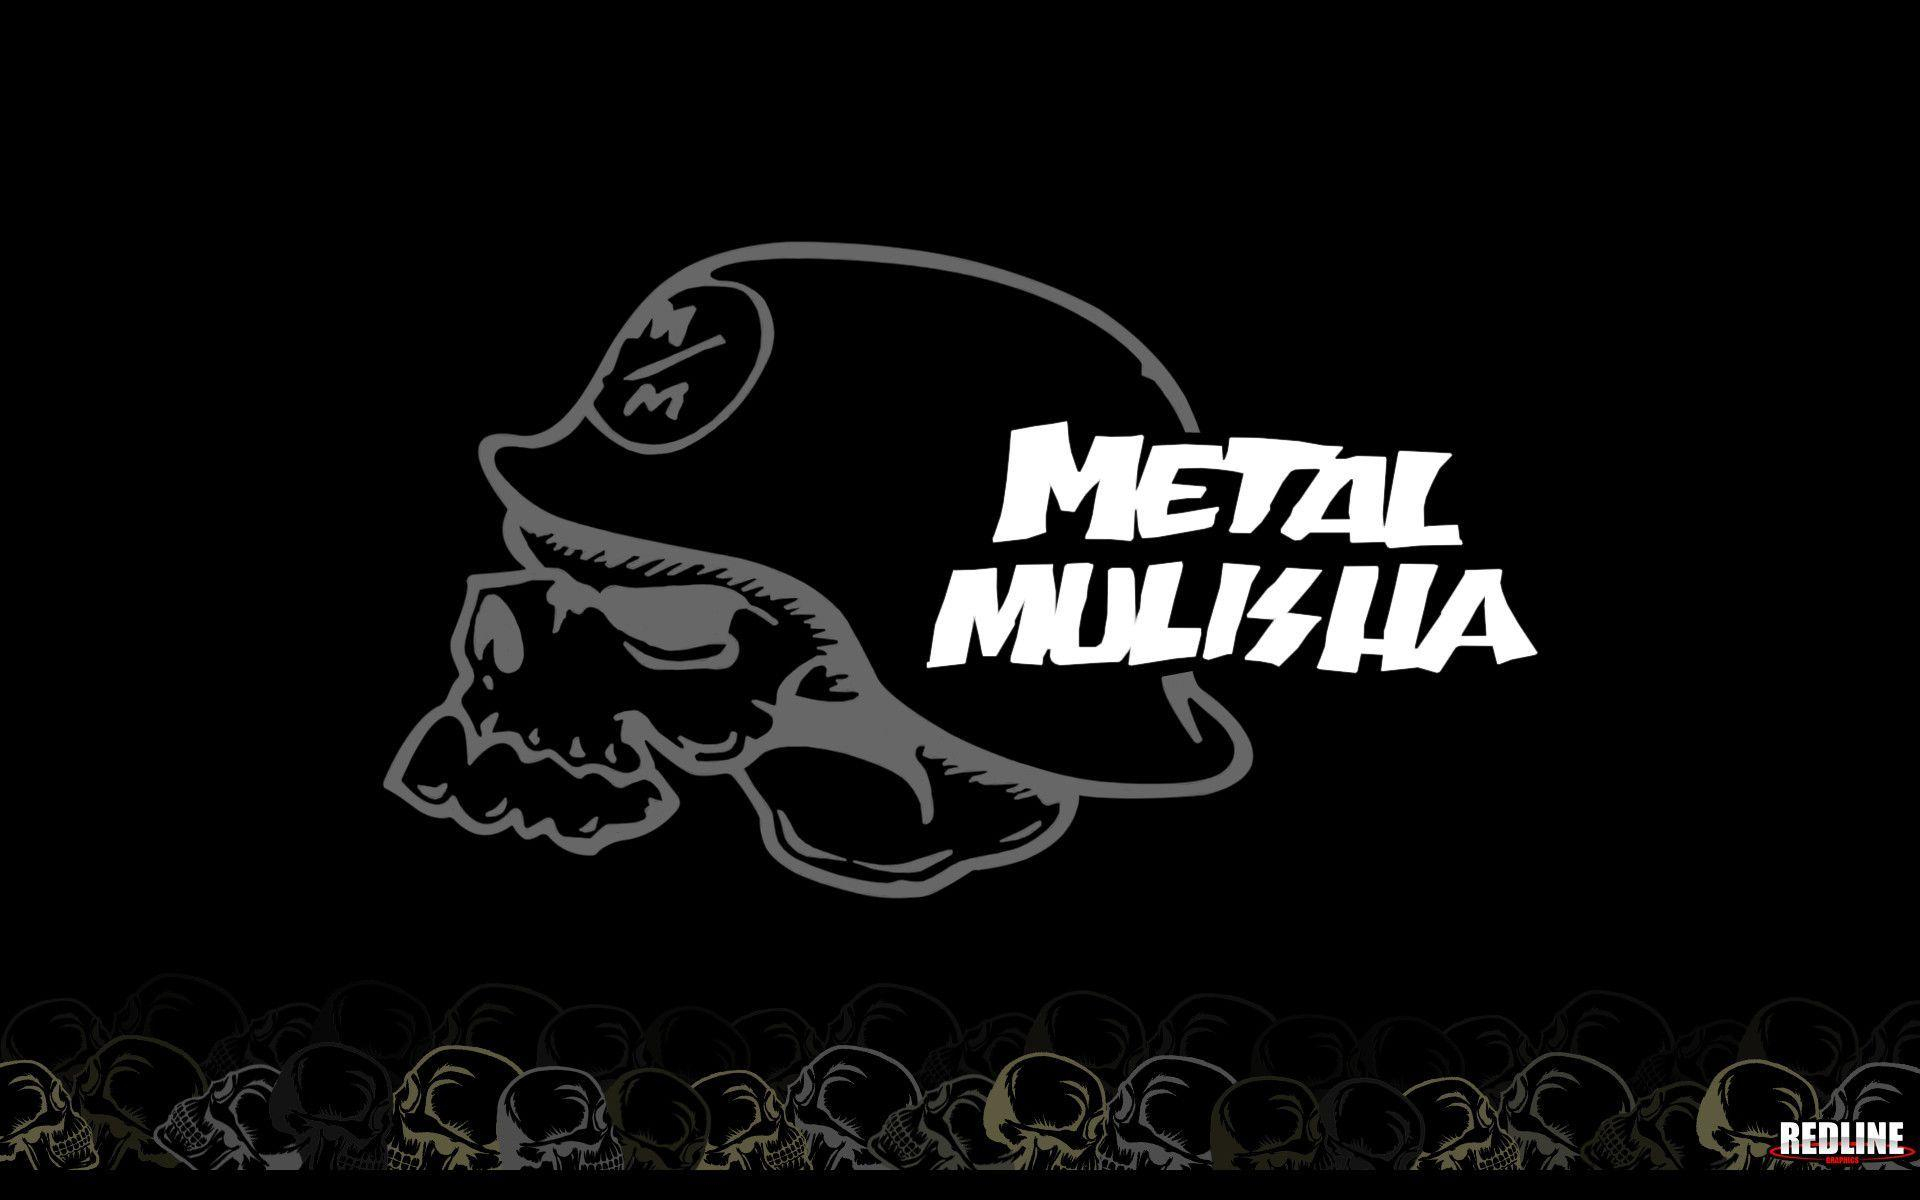 metal mulisha wallpapers - wallpaper cave